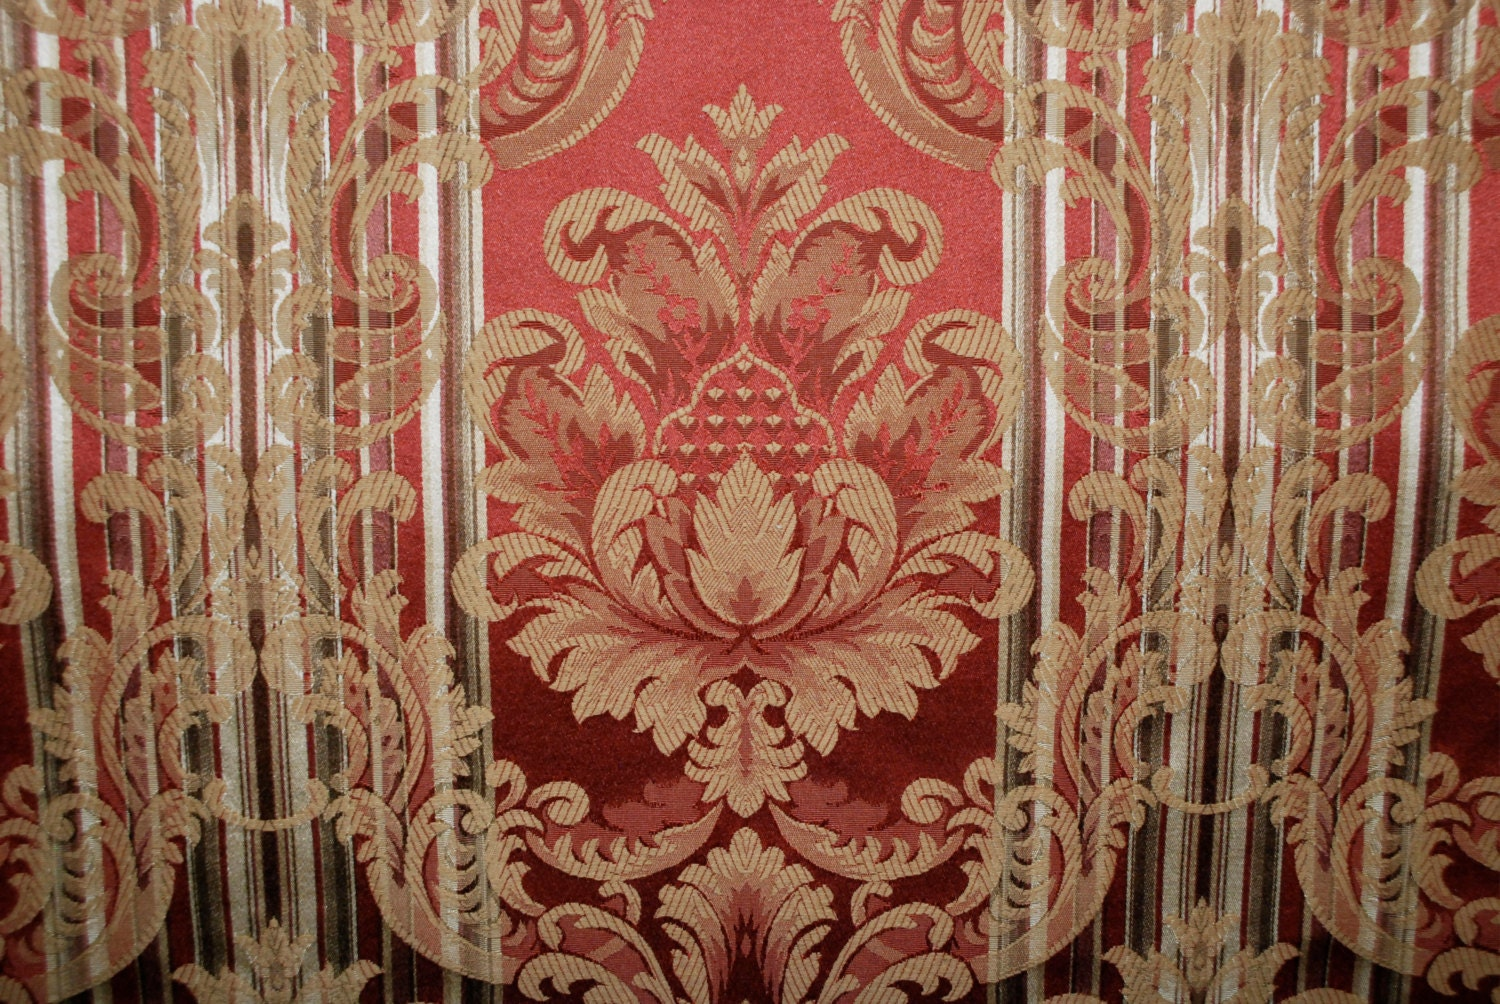 Where To Buy Window Cushions picture on striped damask fabric red and gold with Where To Buy Window Cushions, sofa 915a71ec8a70ab6283aa814dae26b881